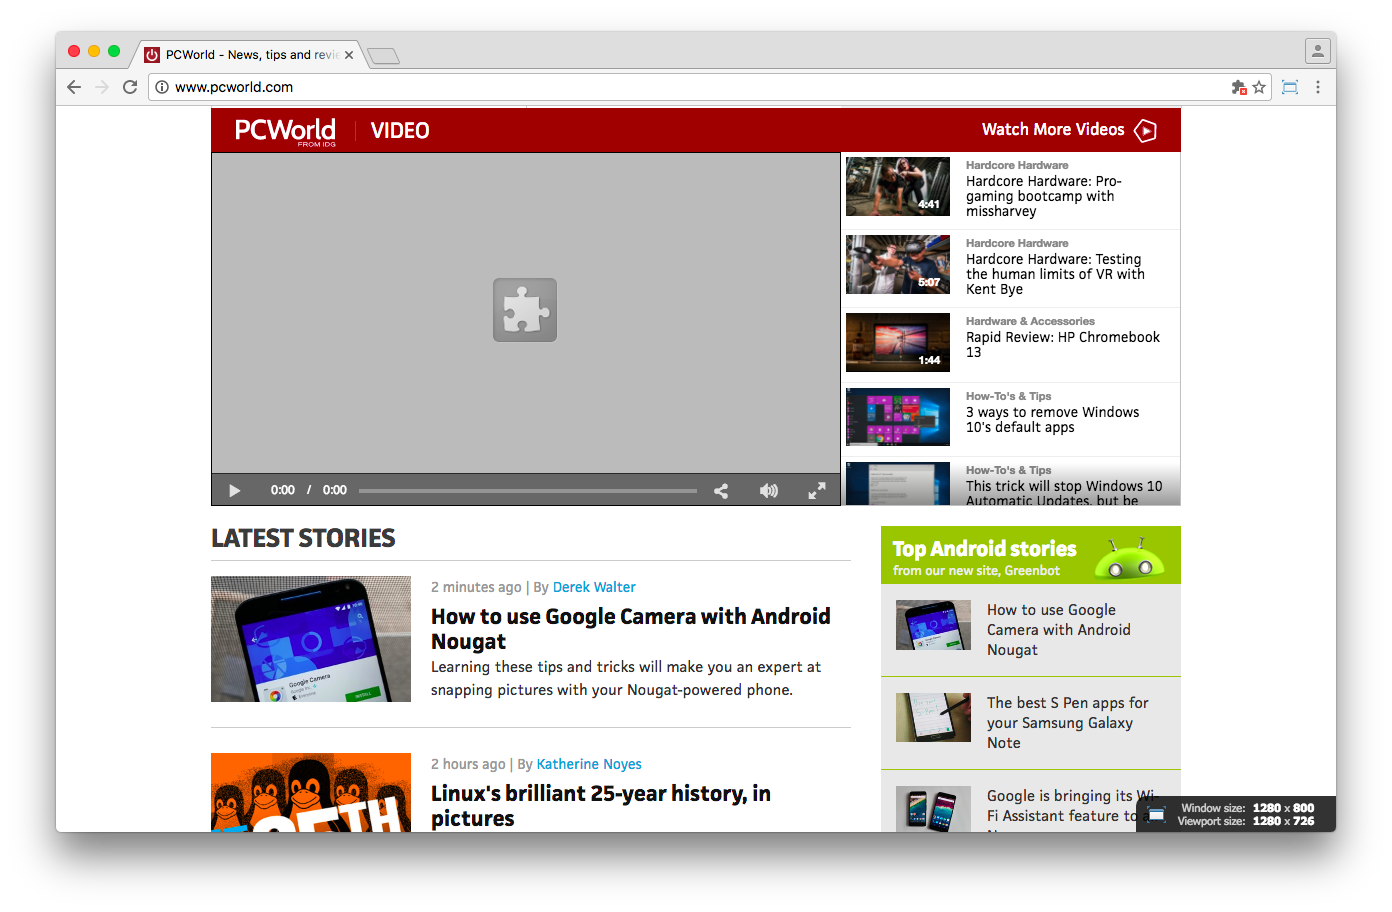 PC World's homepage video playlist immediately jumped to the grey puzzle icon